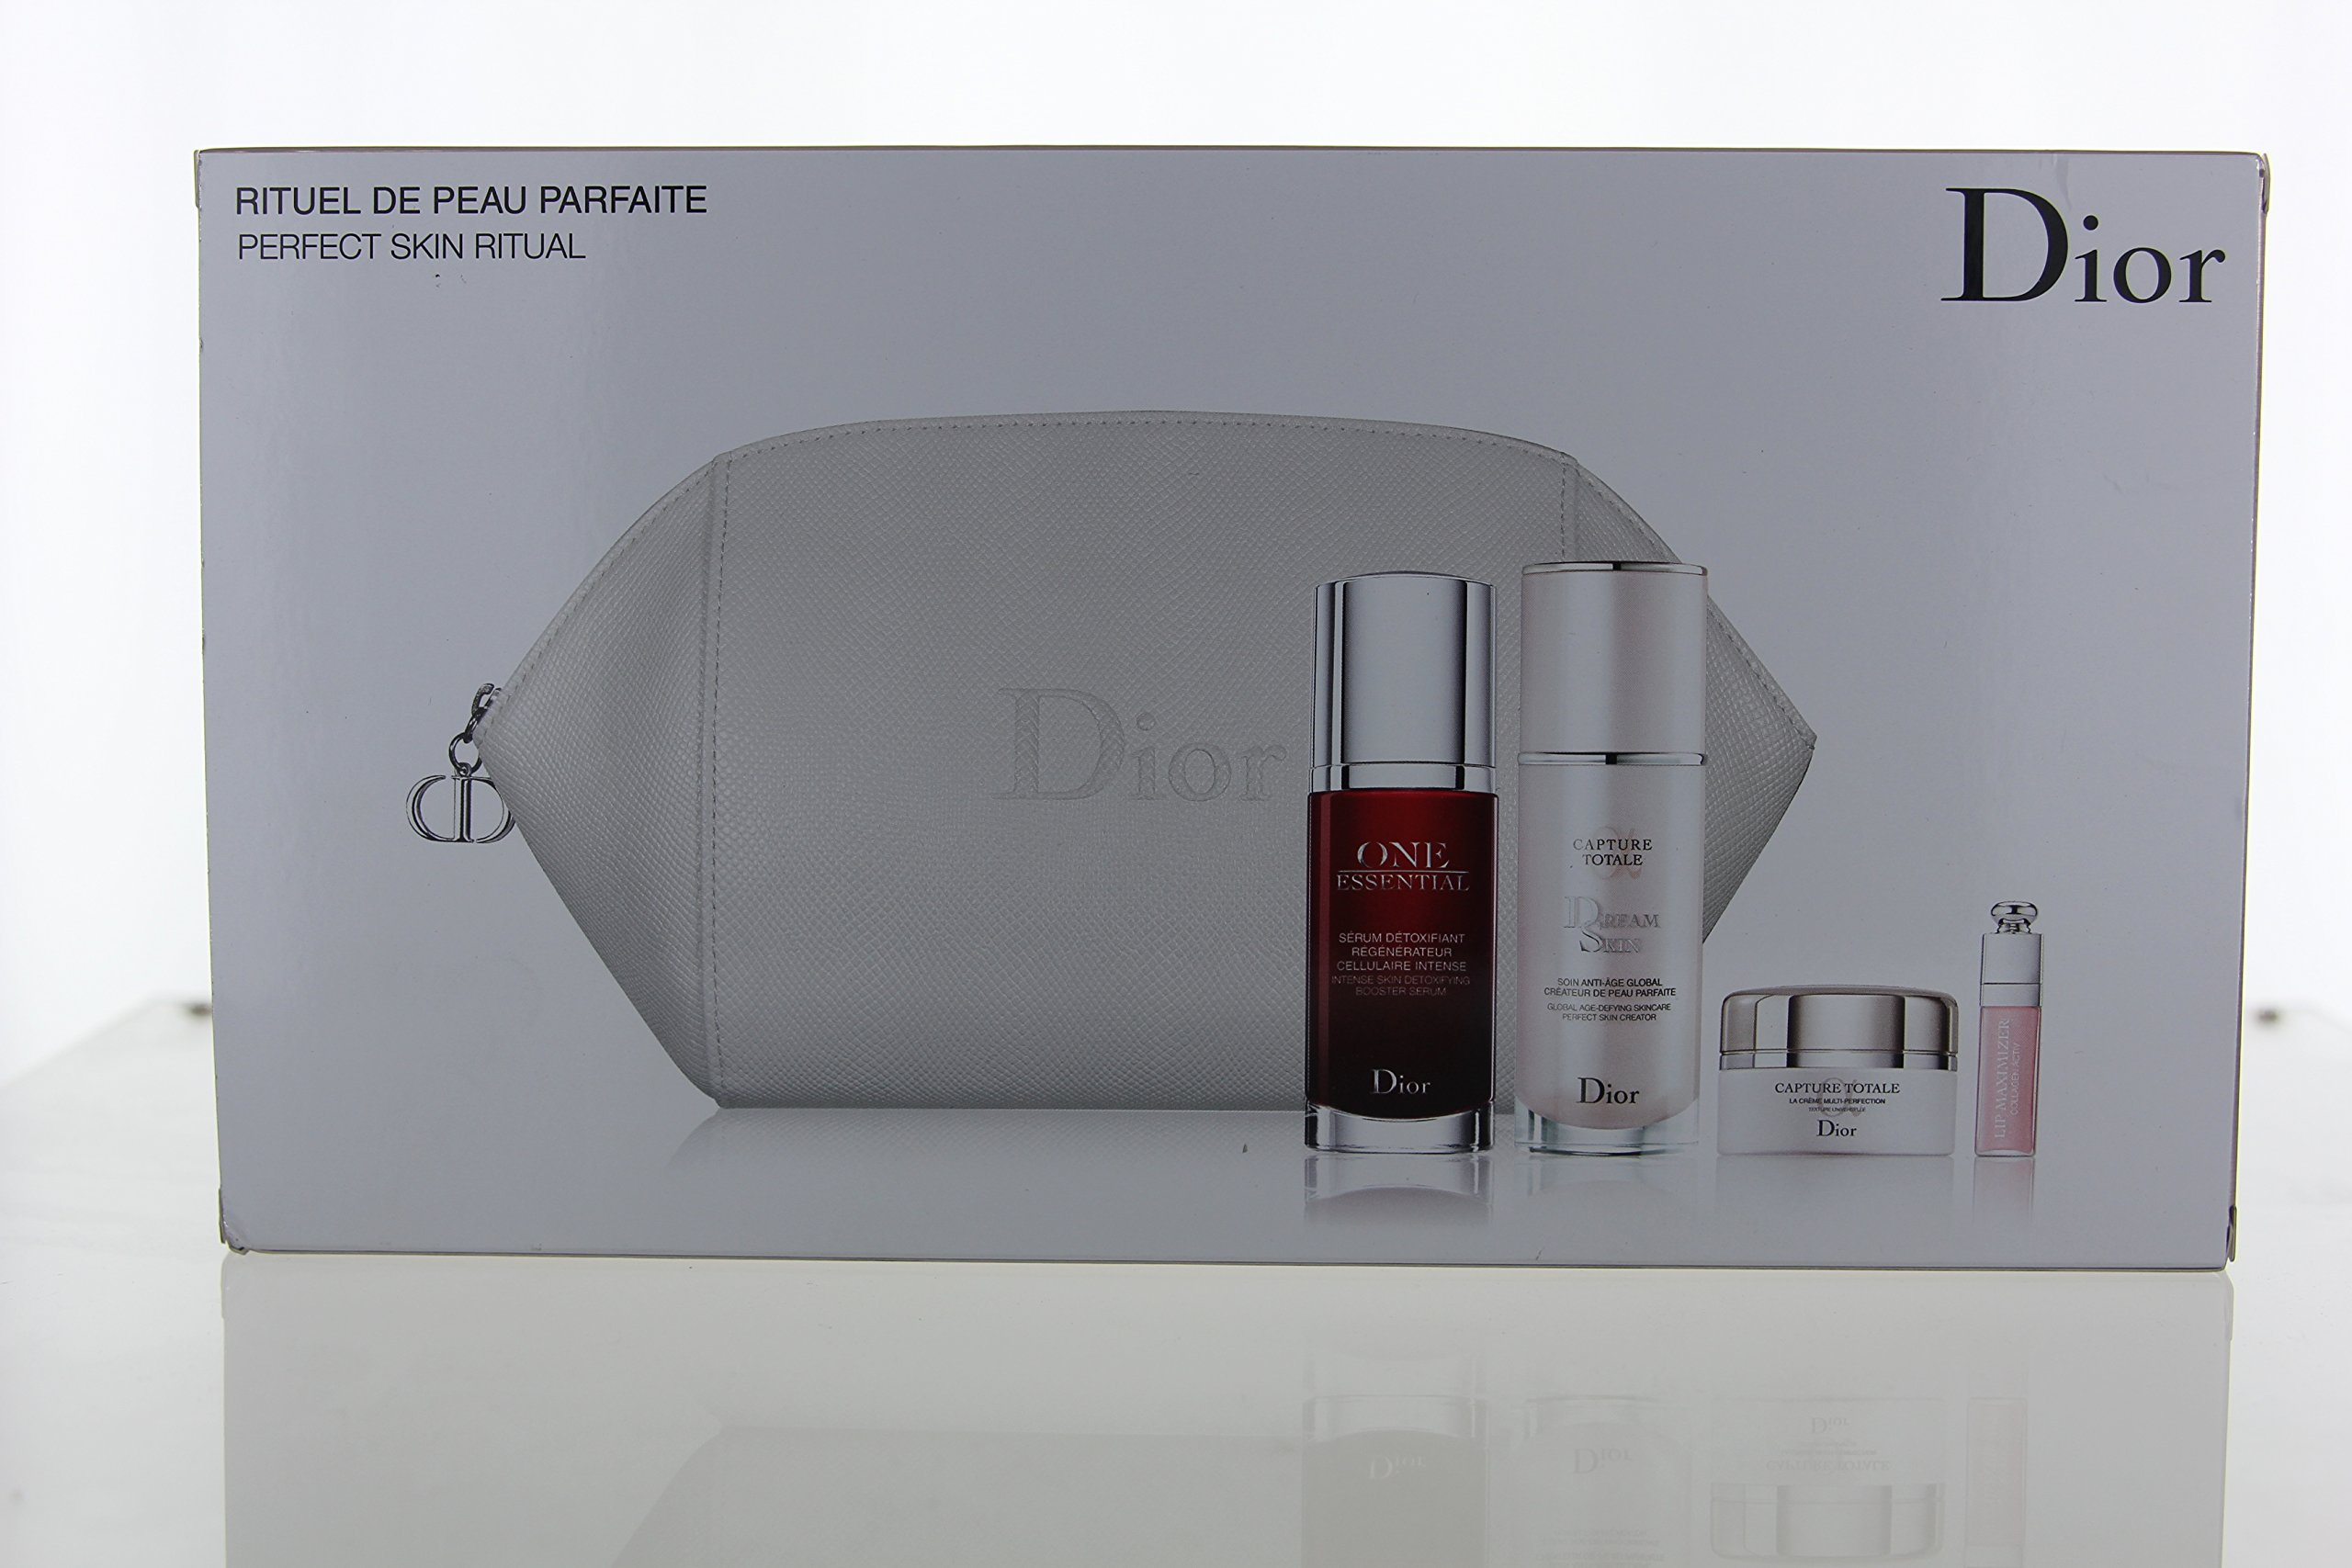 Dior Capture Totale Perfect Skin Ritual Set 5pc Set (One Essential 30ml, Capture Totale 15ml, Capture Totale Dream Skin 30ml, Dior Addict Lip Maximizer 2Ml, Dior Toiletry Bag)